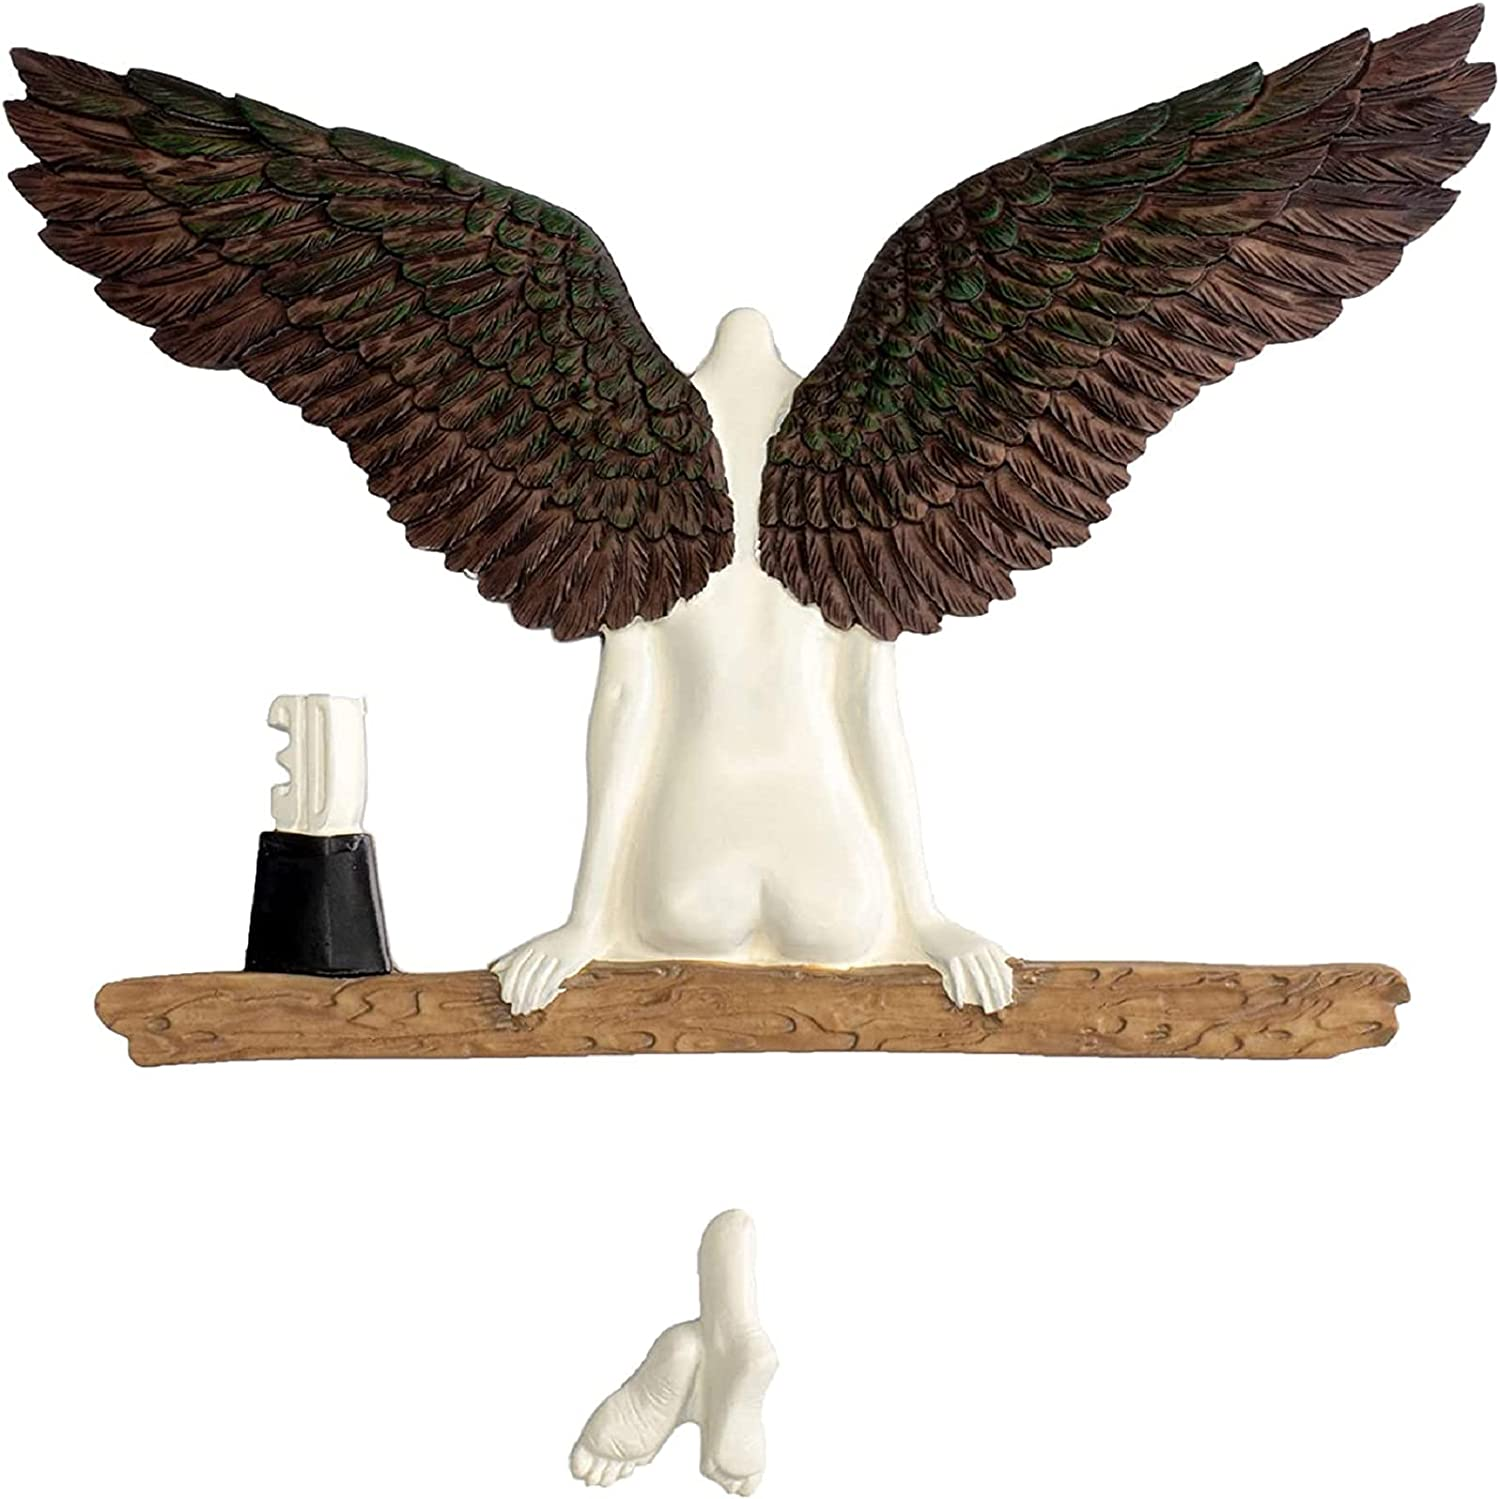 Angel Wings Wall Decor, Icarus Wall Sculpture - 3D Wall Decorations for living Room Office Large Wall Decor